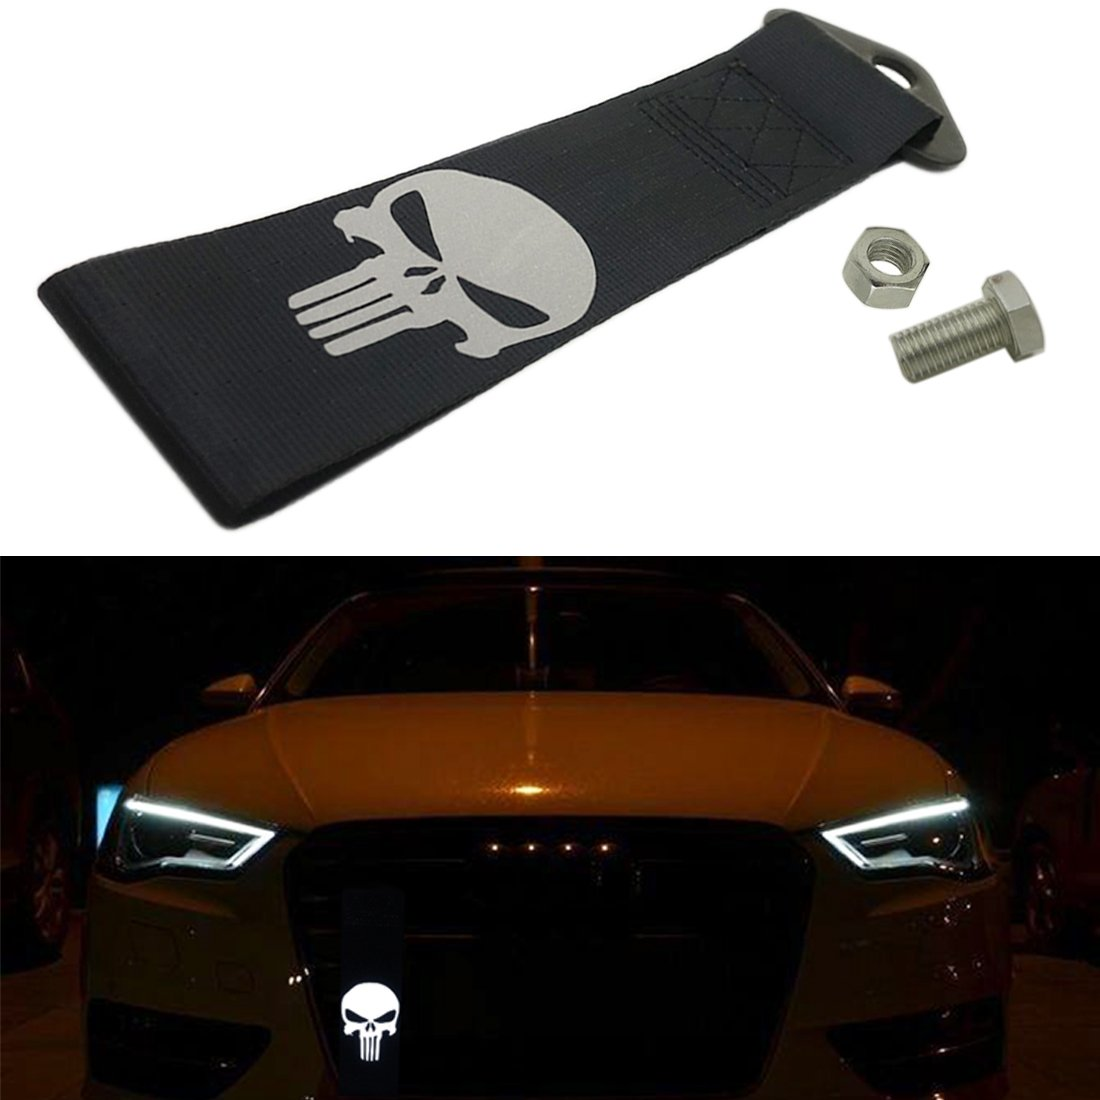 Kaizen Reflective Universal Skull Racing Tow Strap JDM Towing Strap Punisher Bumper Towing Set for Front Or Rear Bumper Towing Hook (Black) Kaizen Acc